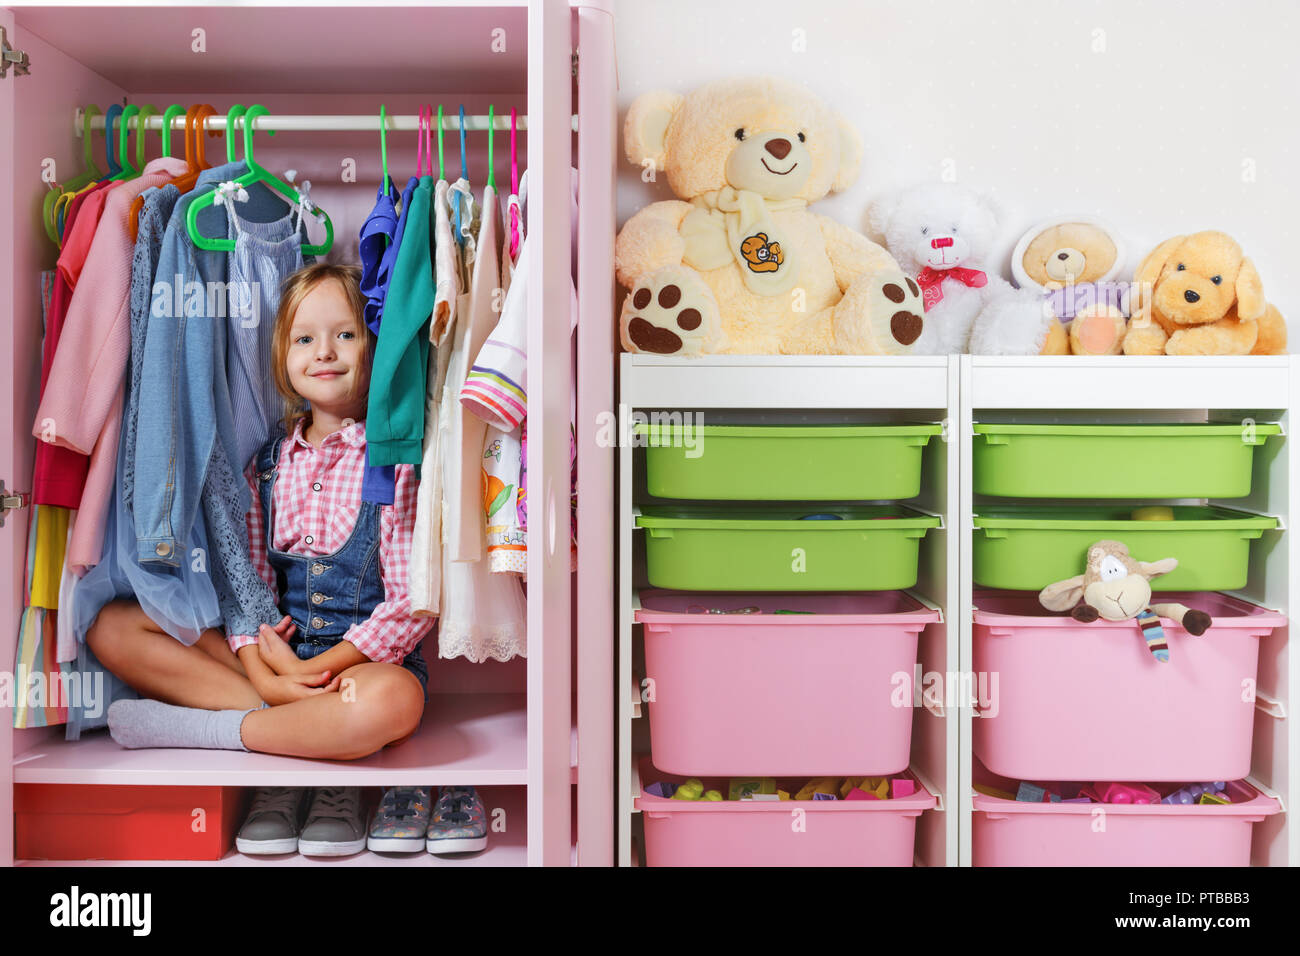 A little child girl is sitting in a wardrobe in a children's room. Saving and storage system for children's things and toys concept. - Stock Image